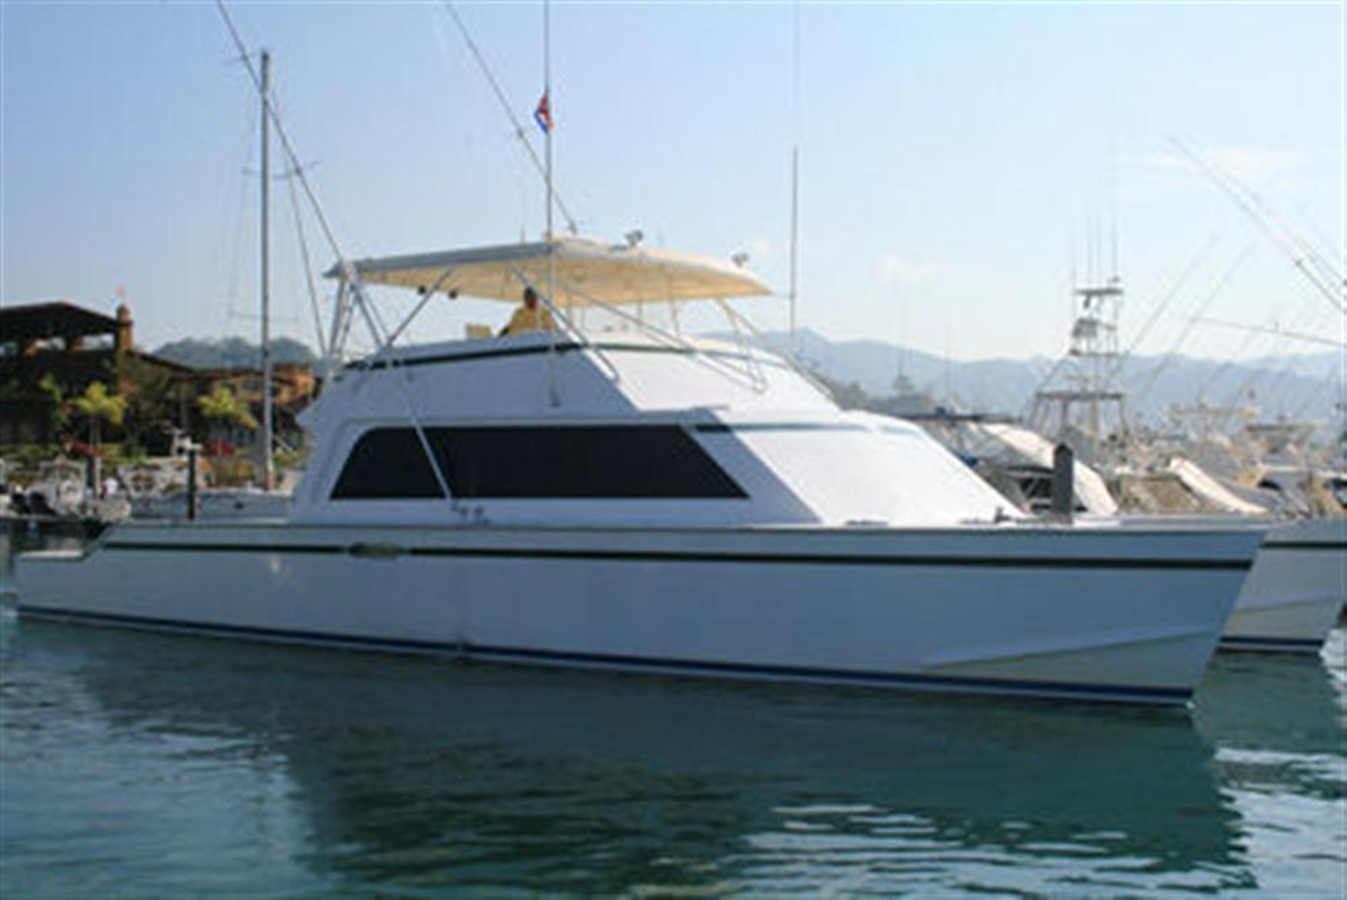 1998 CUSTOM Mick Jarrod PowerCat Sportfisher/Dive Boat Catamaran 156649